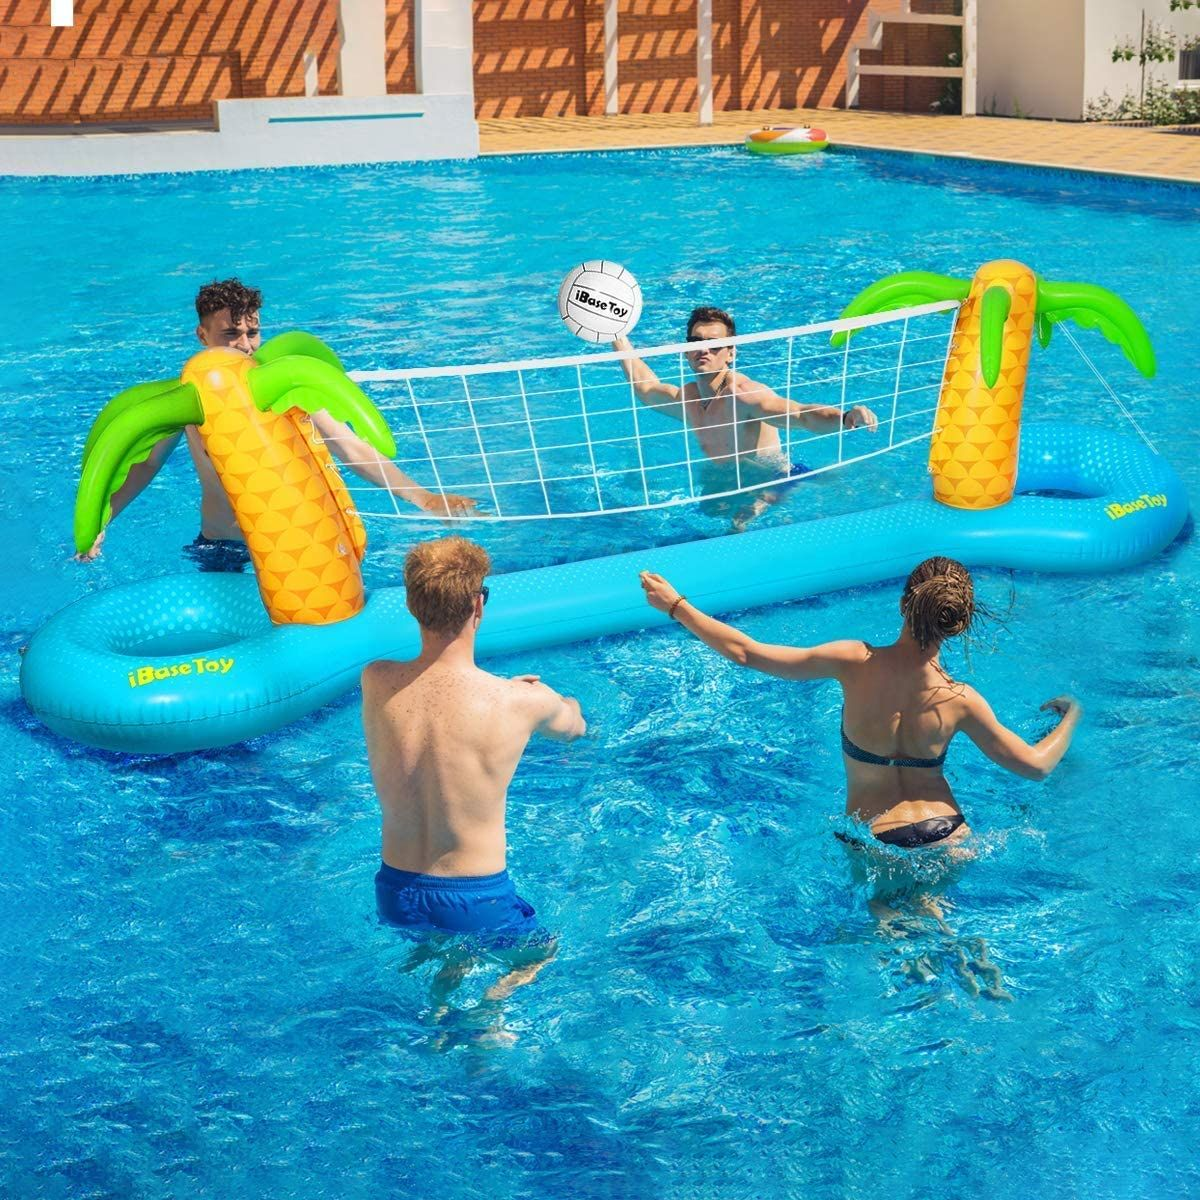 Ibasetoy Inflatable Pool Volleyball Game Set With Adjustable Net And 2 Balls Inflatablepool In 2020 Swimming Pool Games Cool Swimming Pools Swimming Pool Toys